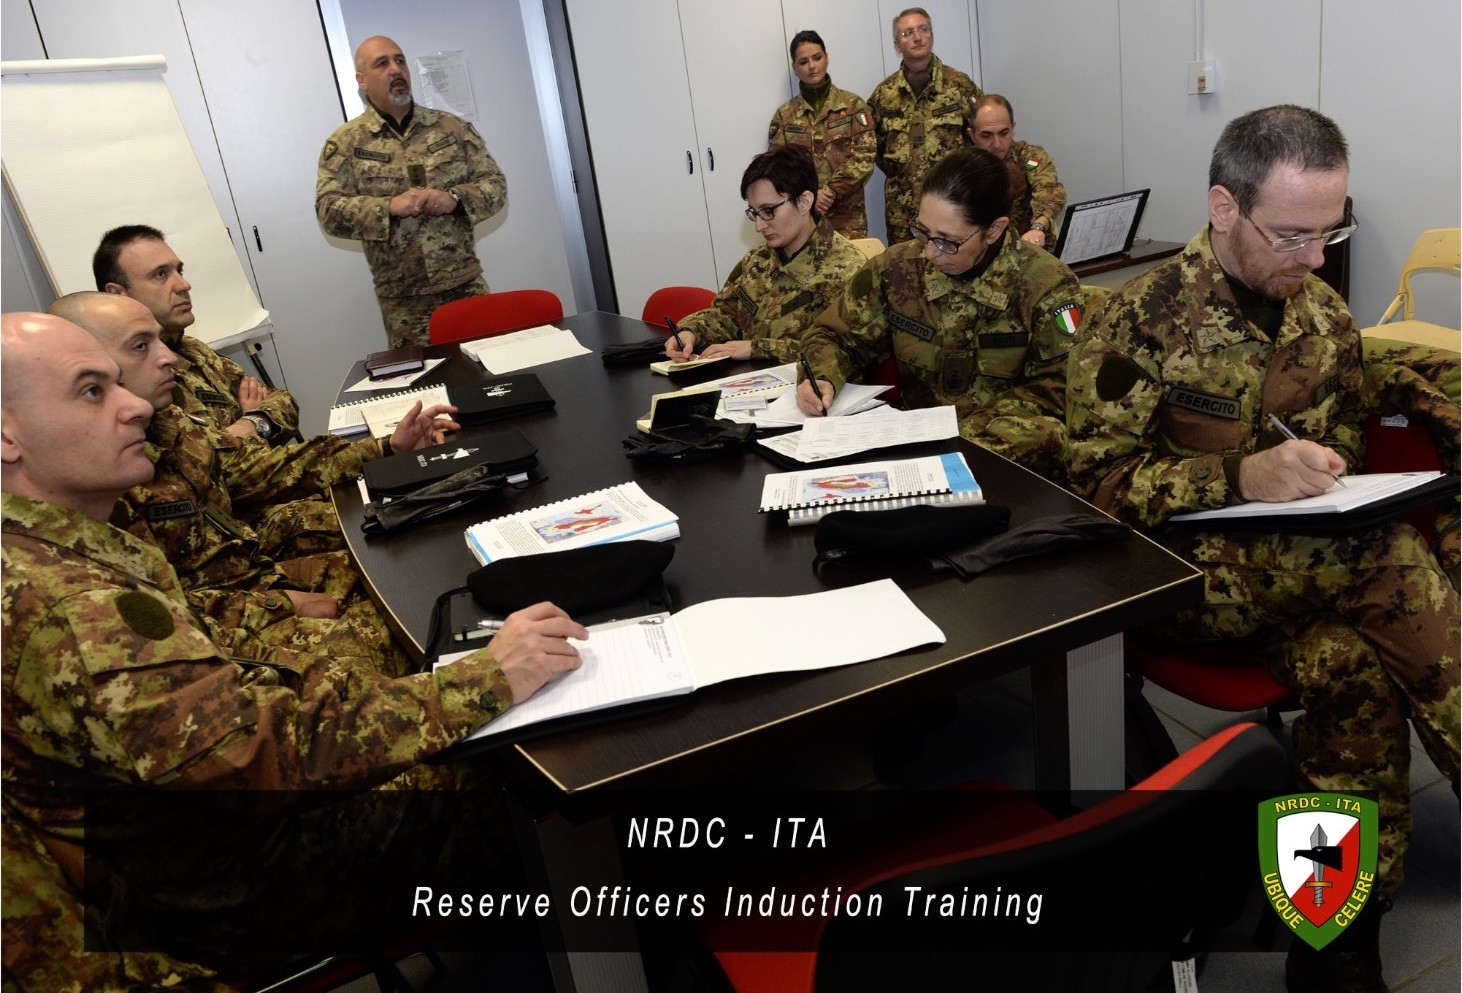 NRDC-ITA Reserve Officers Induction Training